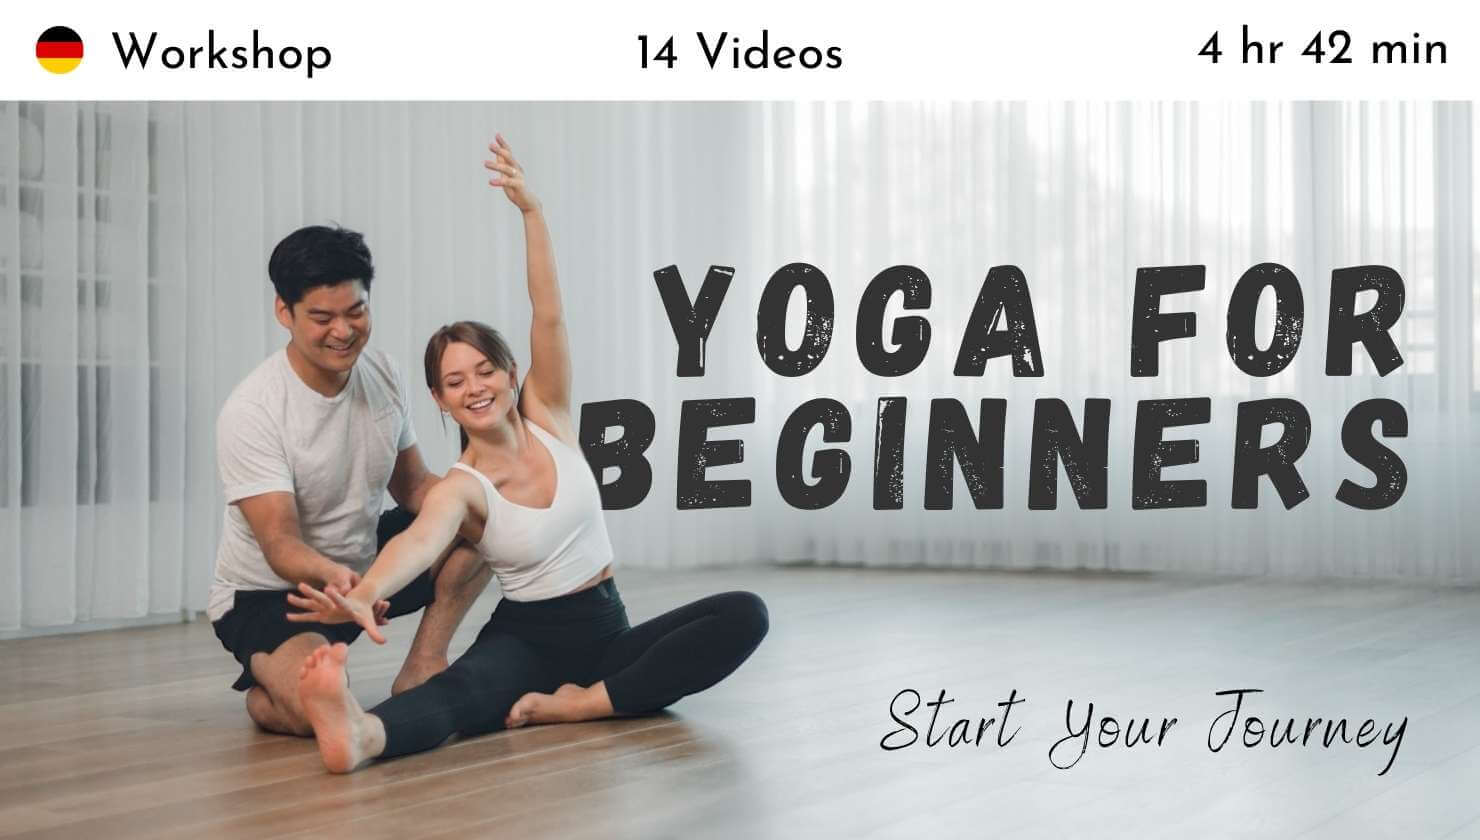 Yog-for-Beginners_thumbnail